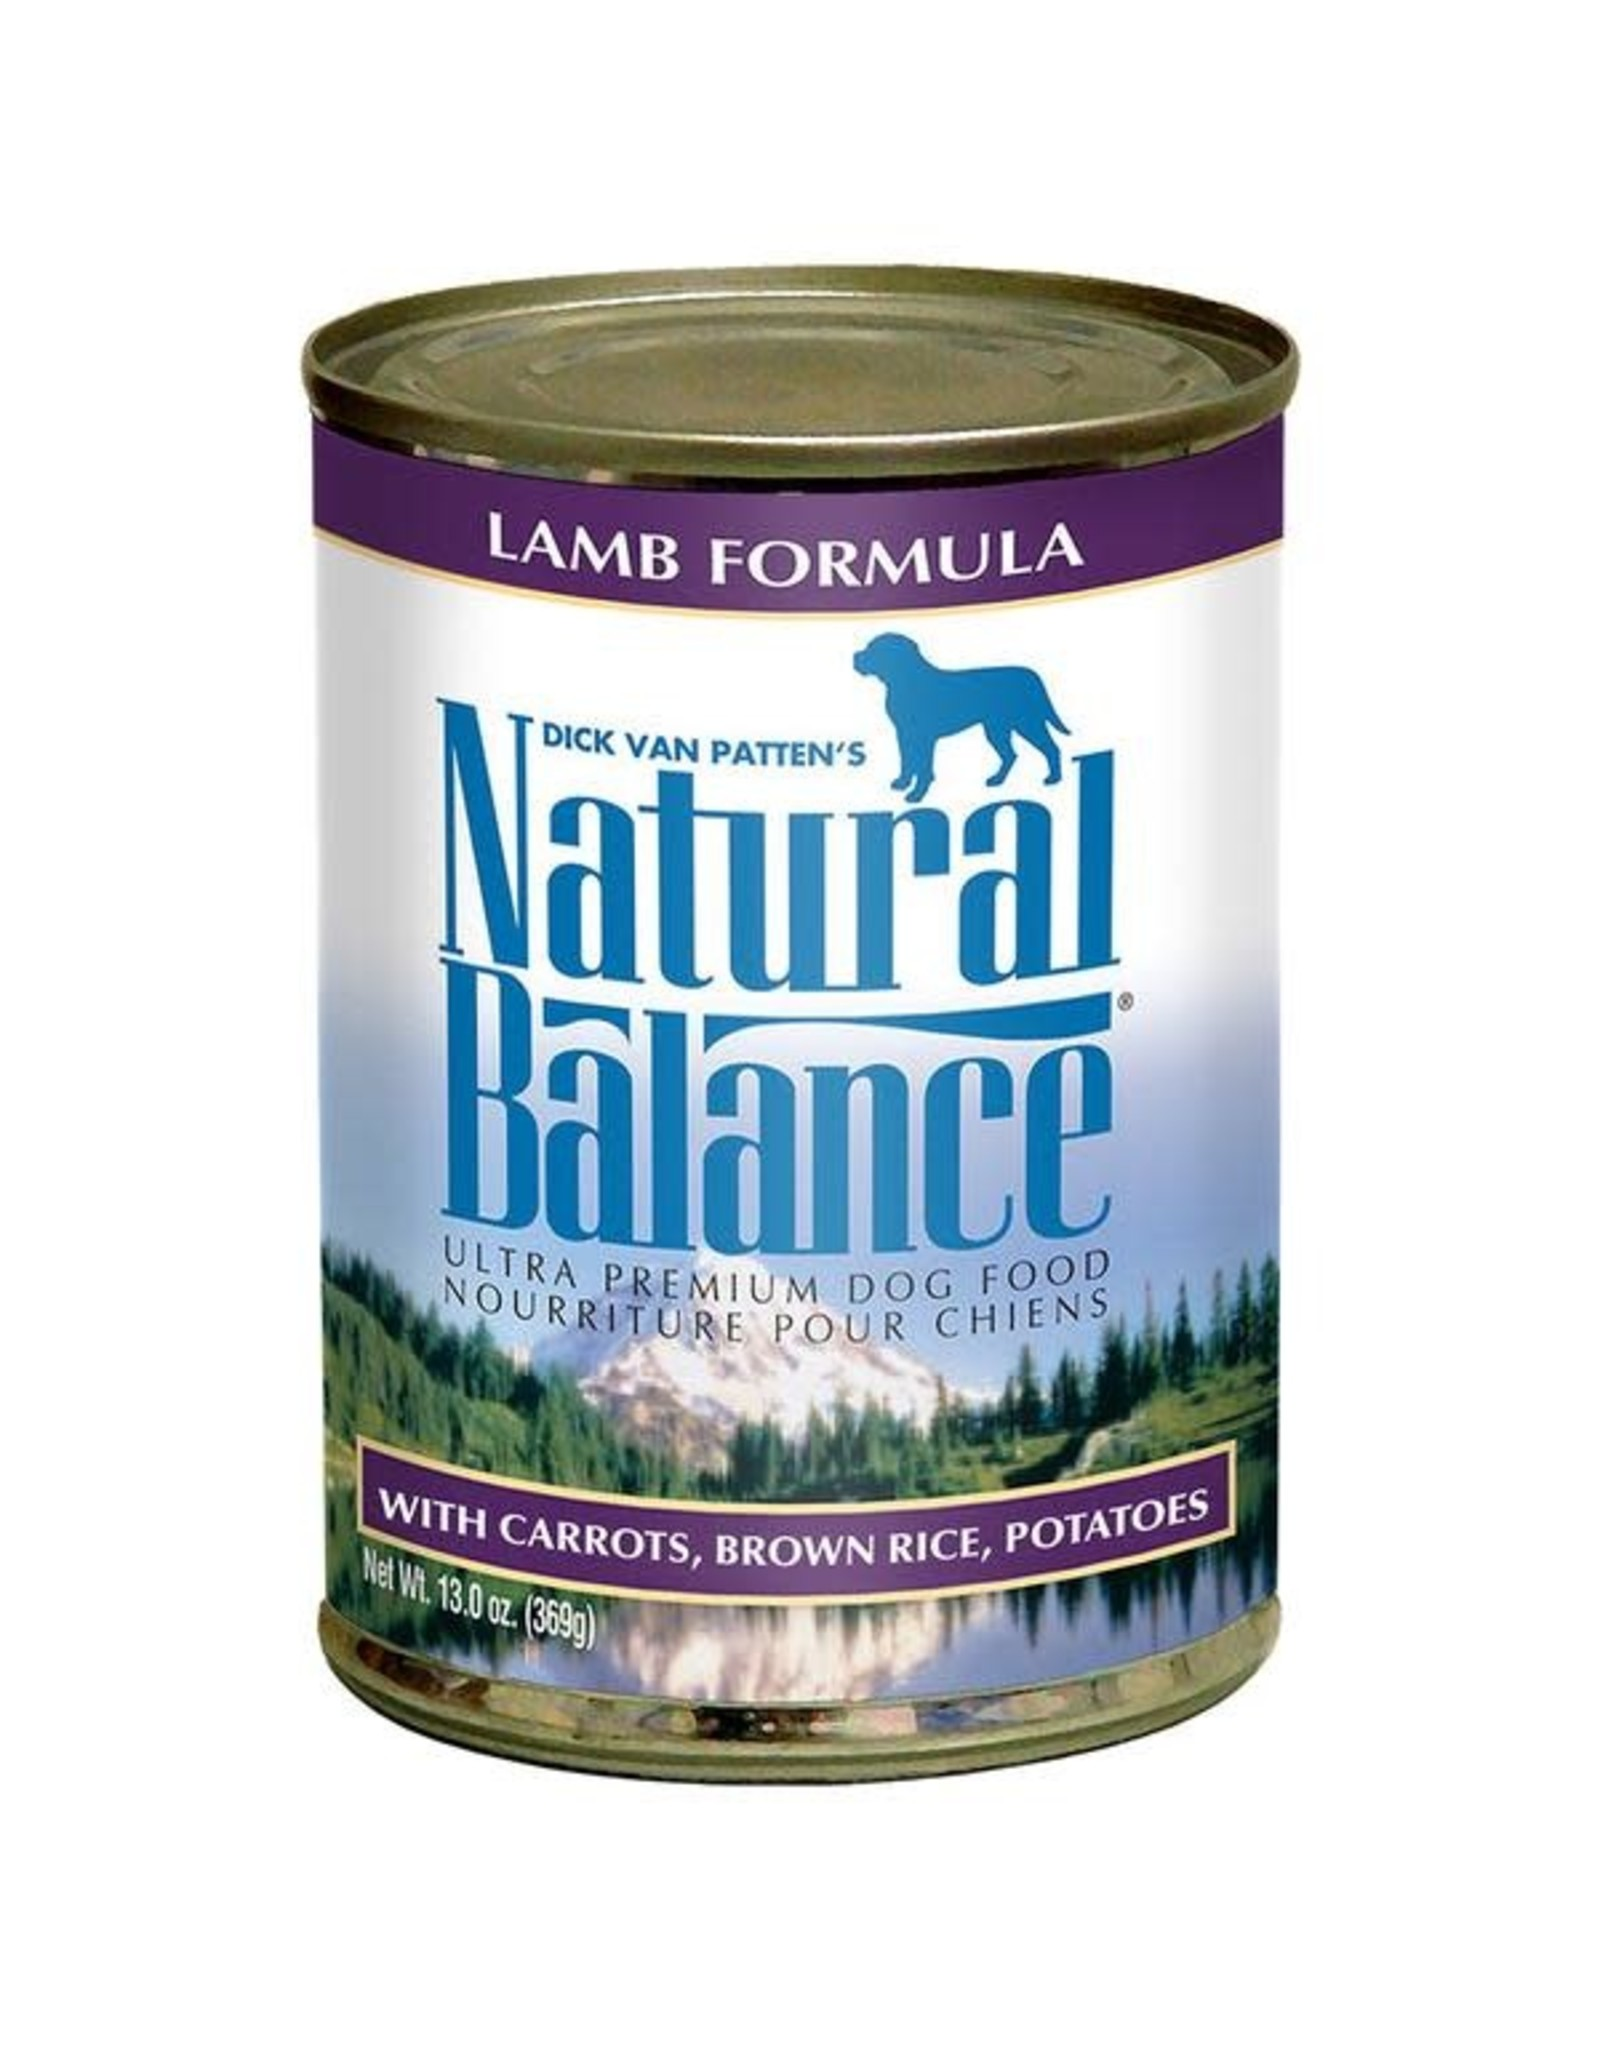 ULTRA PREMIUM LAMB FORMULA, 13 OZ CAN